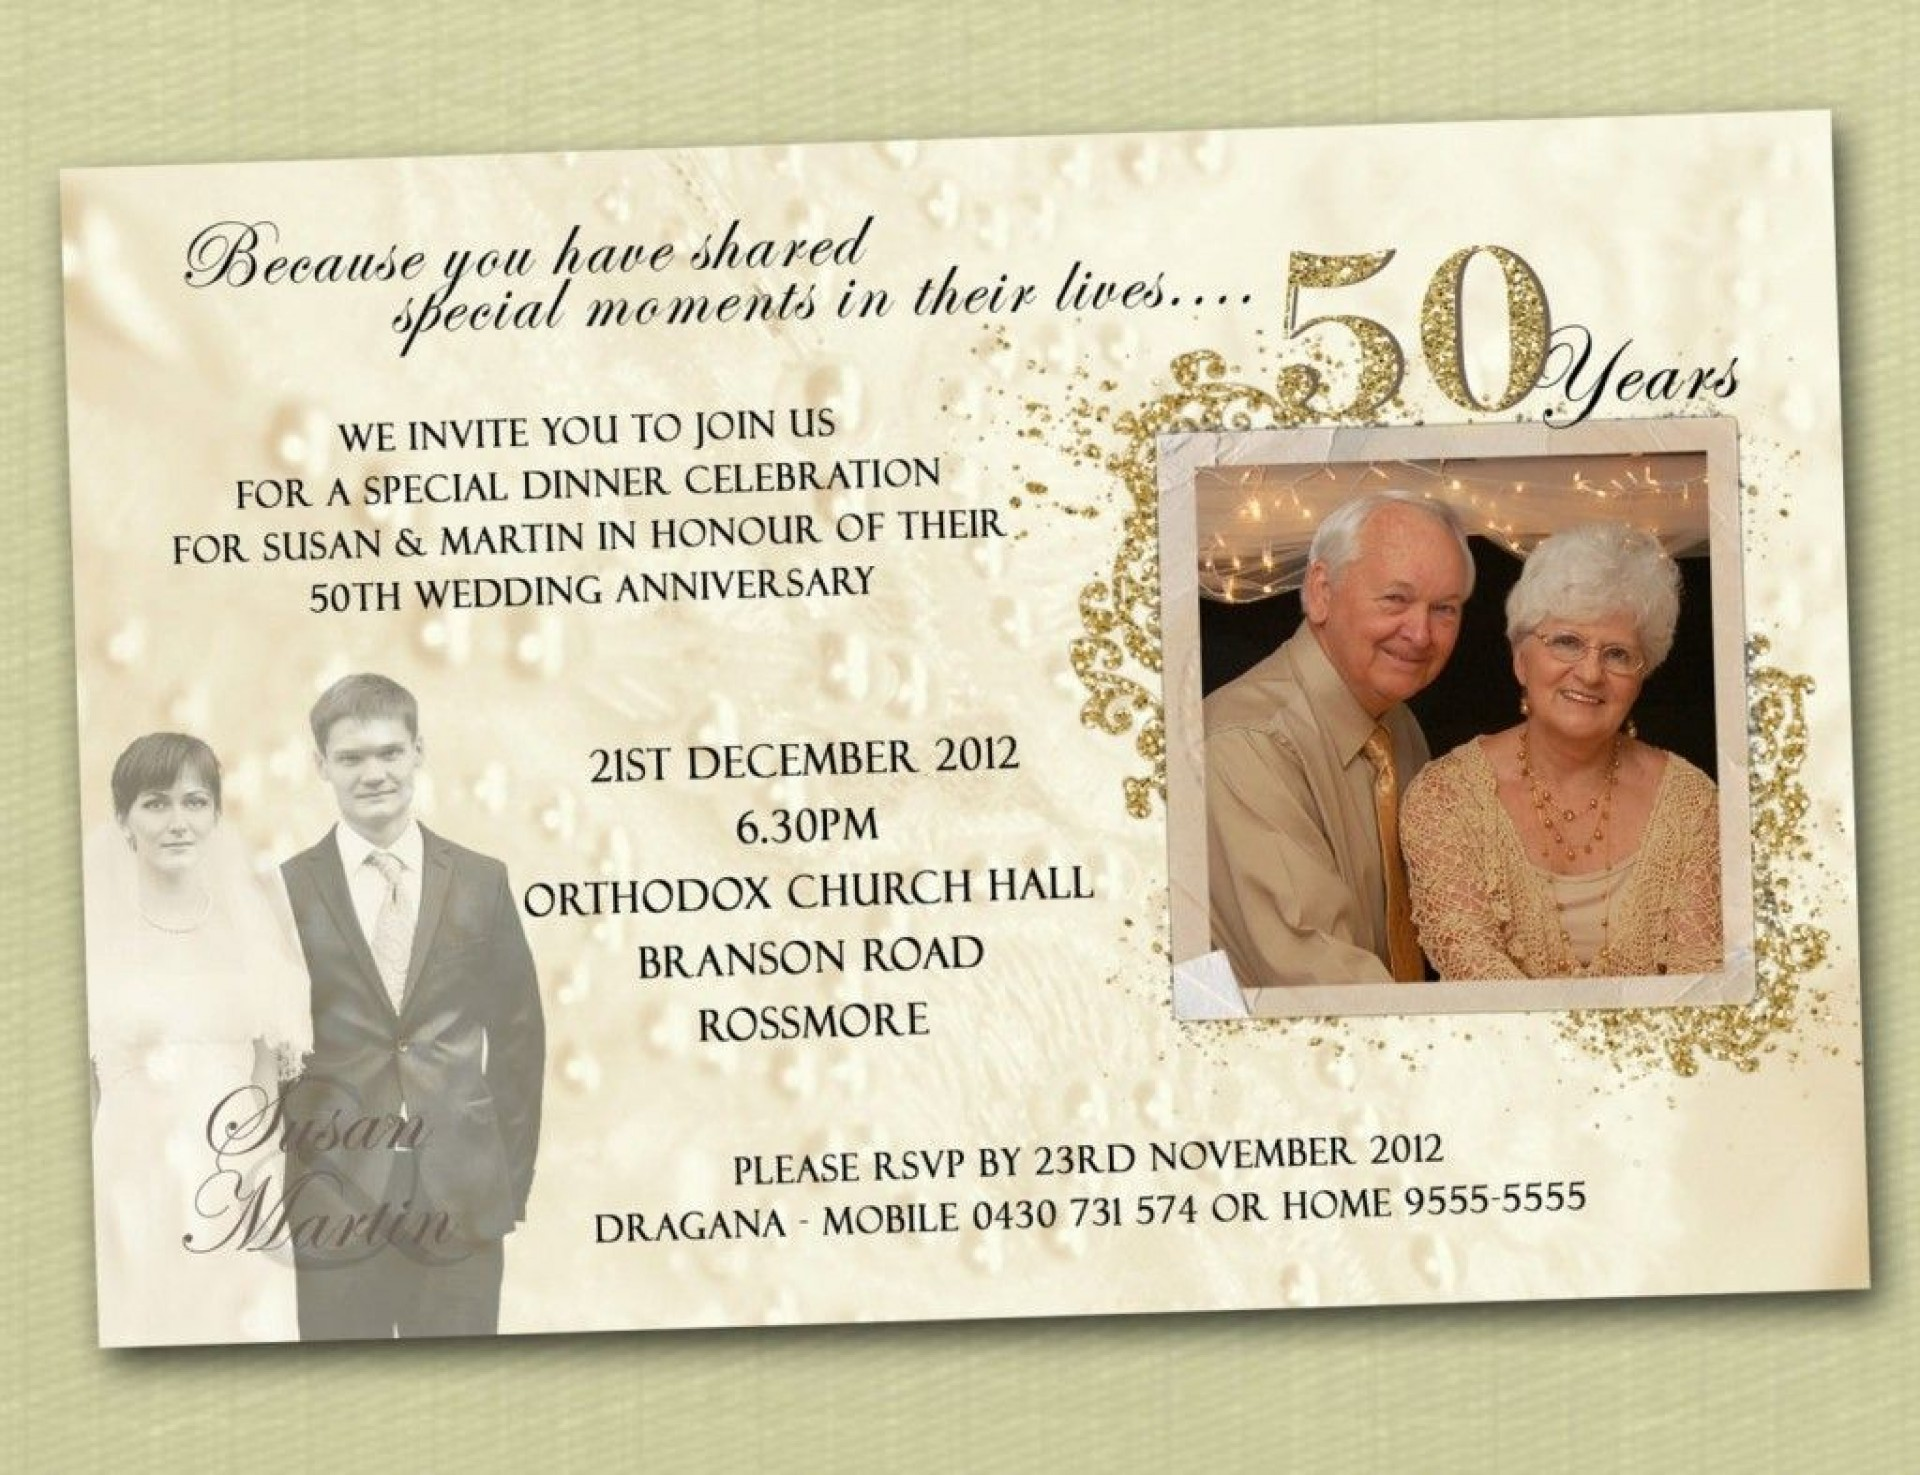 009 Excellent 50th Wedding Anniversary Party Invitation Template High Def  Templates Free1920